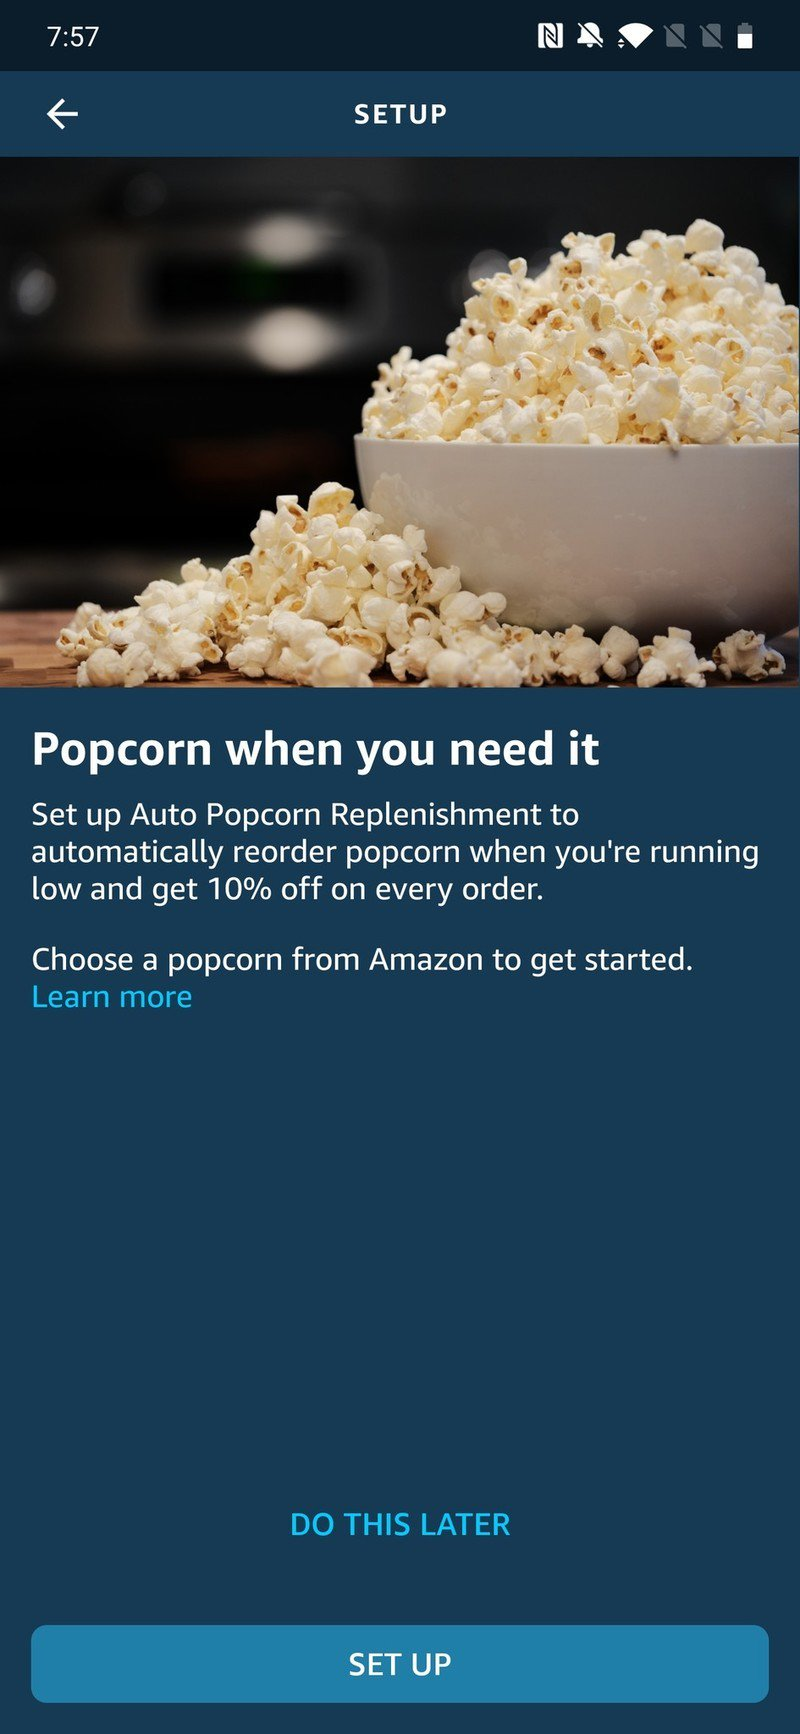 amazon-microwave-popcorn-how-to-4.jpg?it